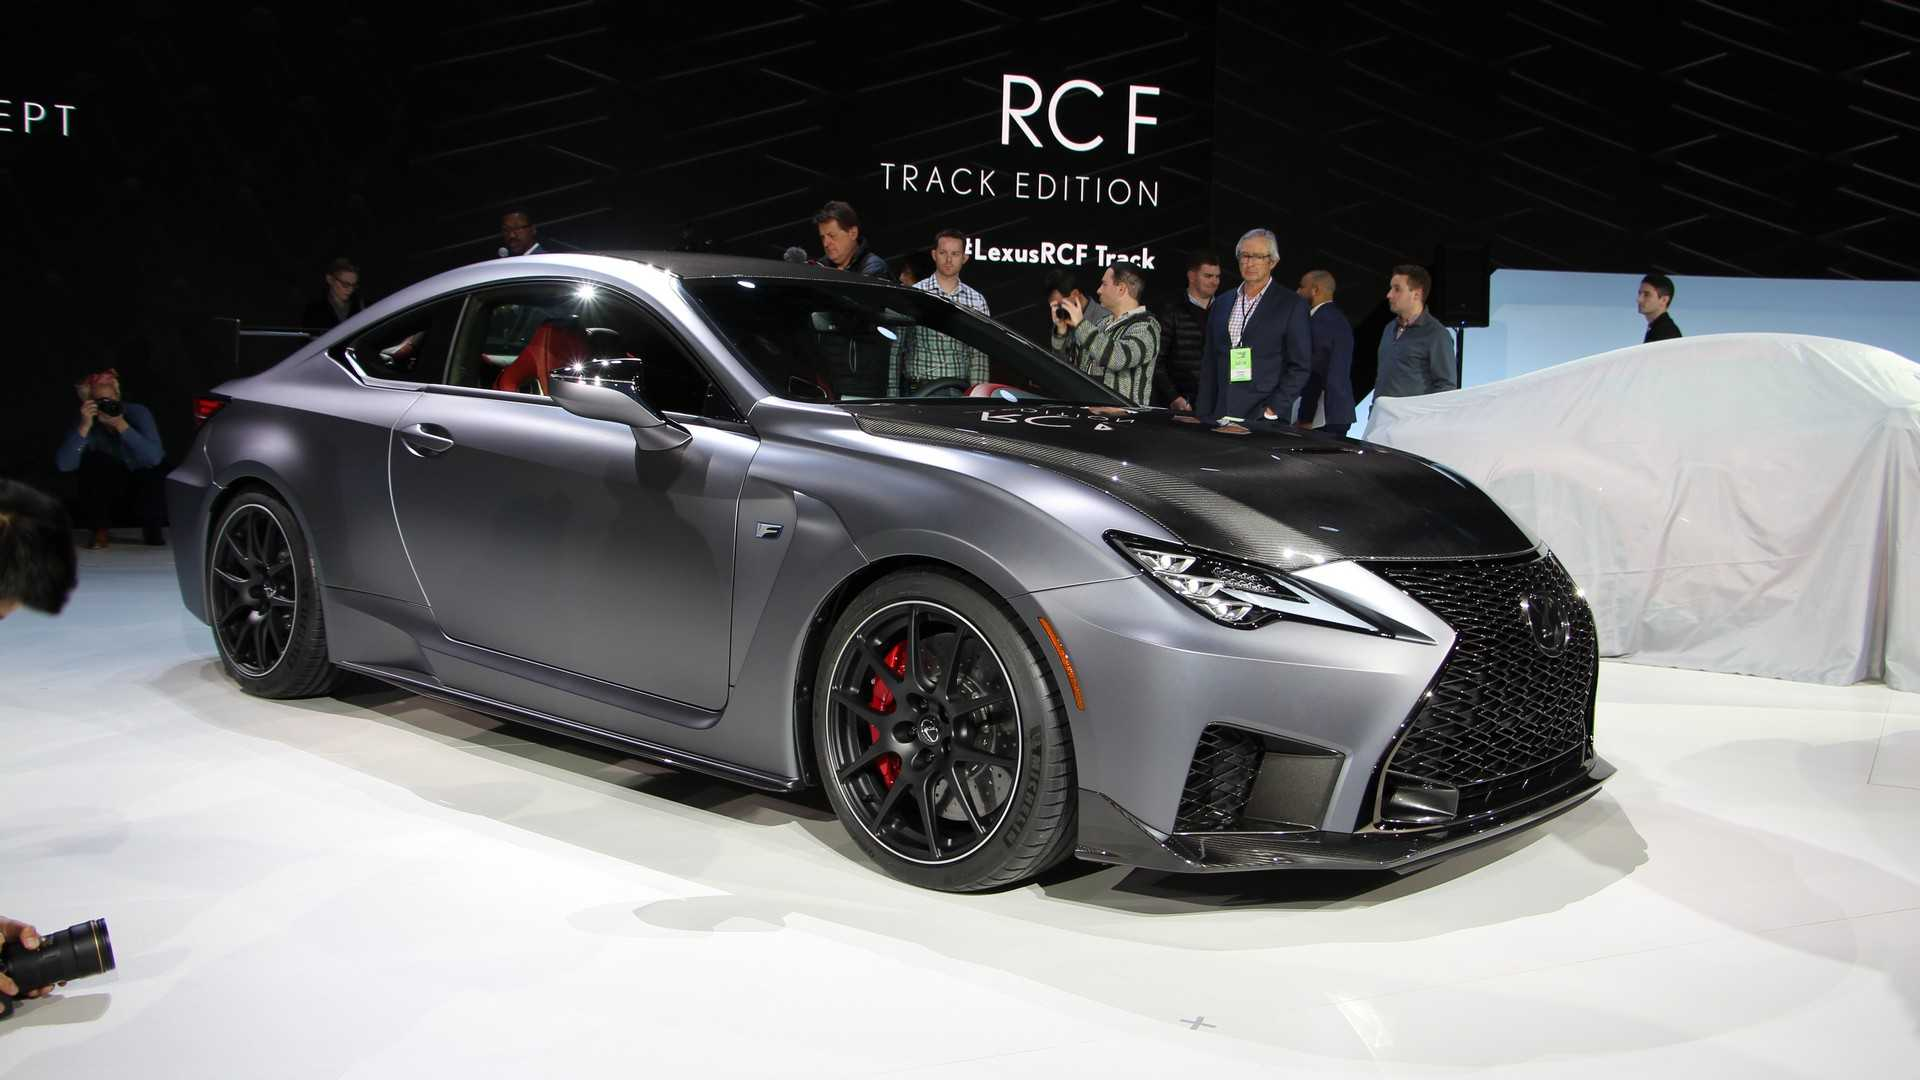 38 All New Rcf Lexus 2019 Spesification